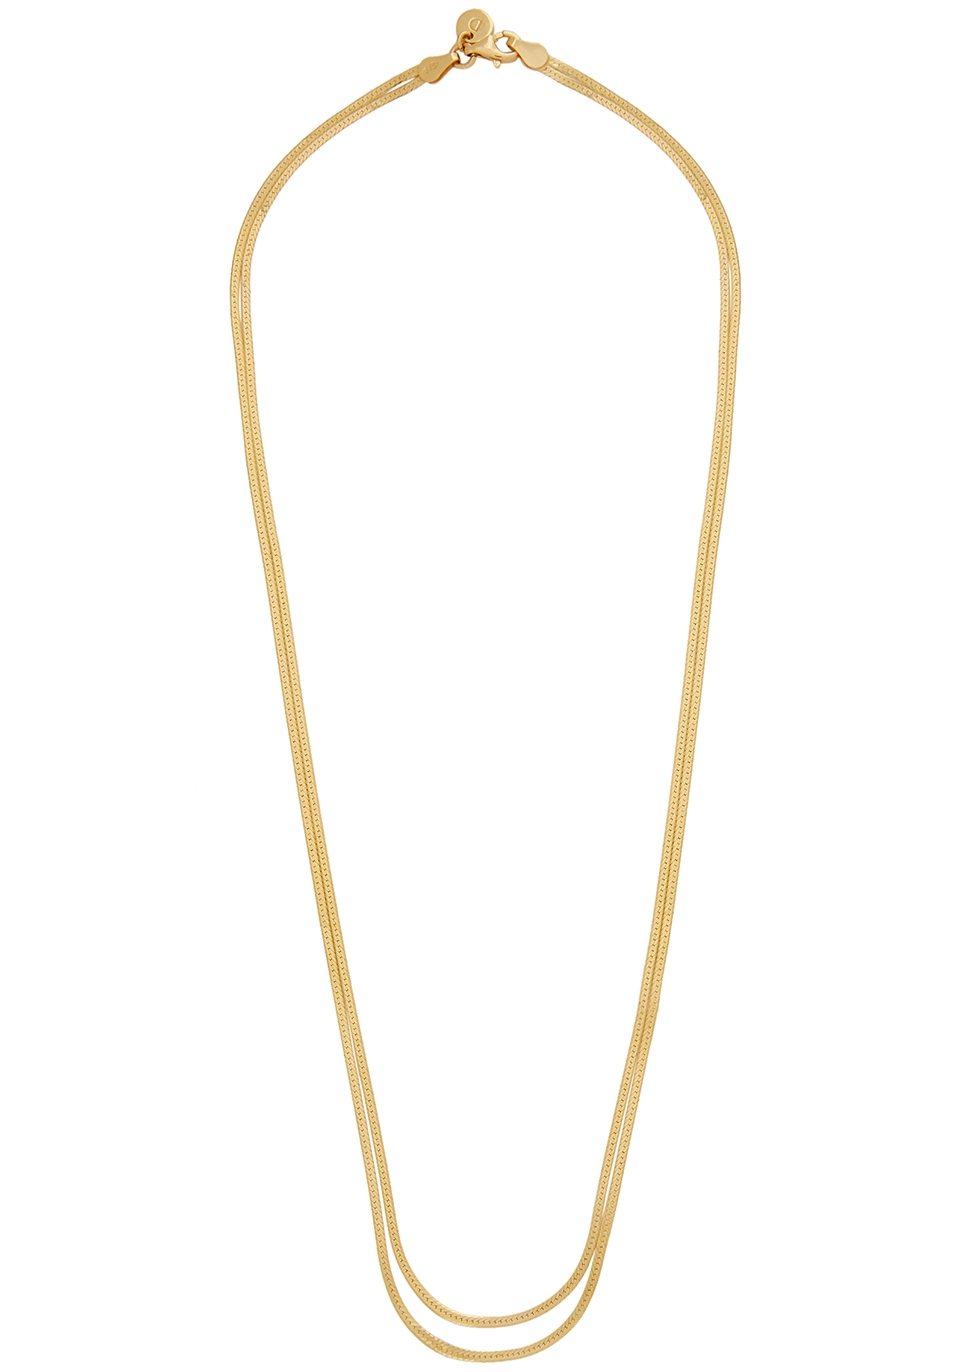 X Estée Lalonde 18kt gold-plated necklace